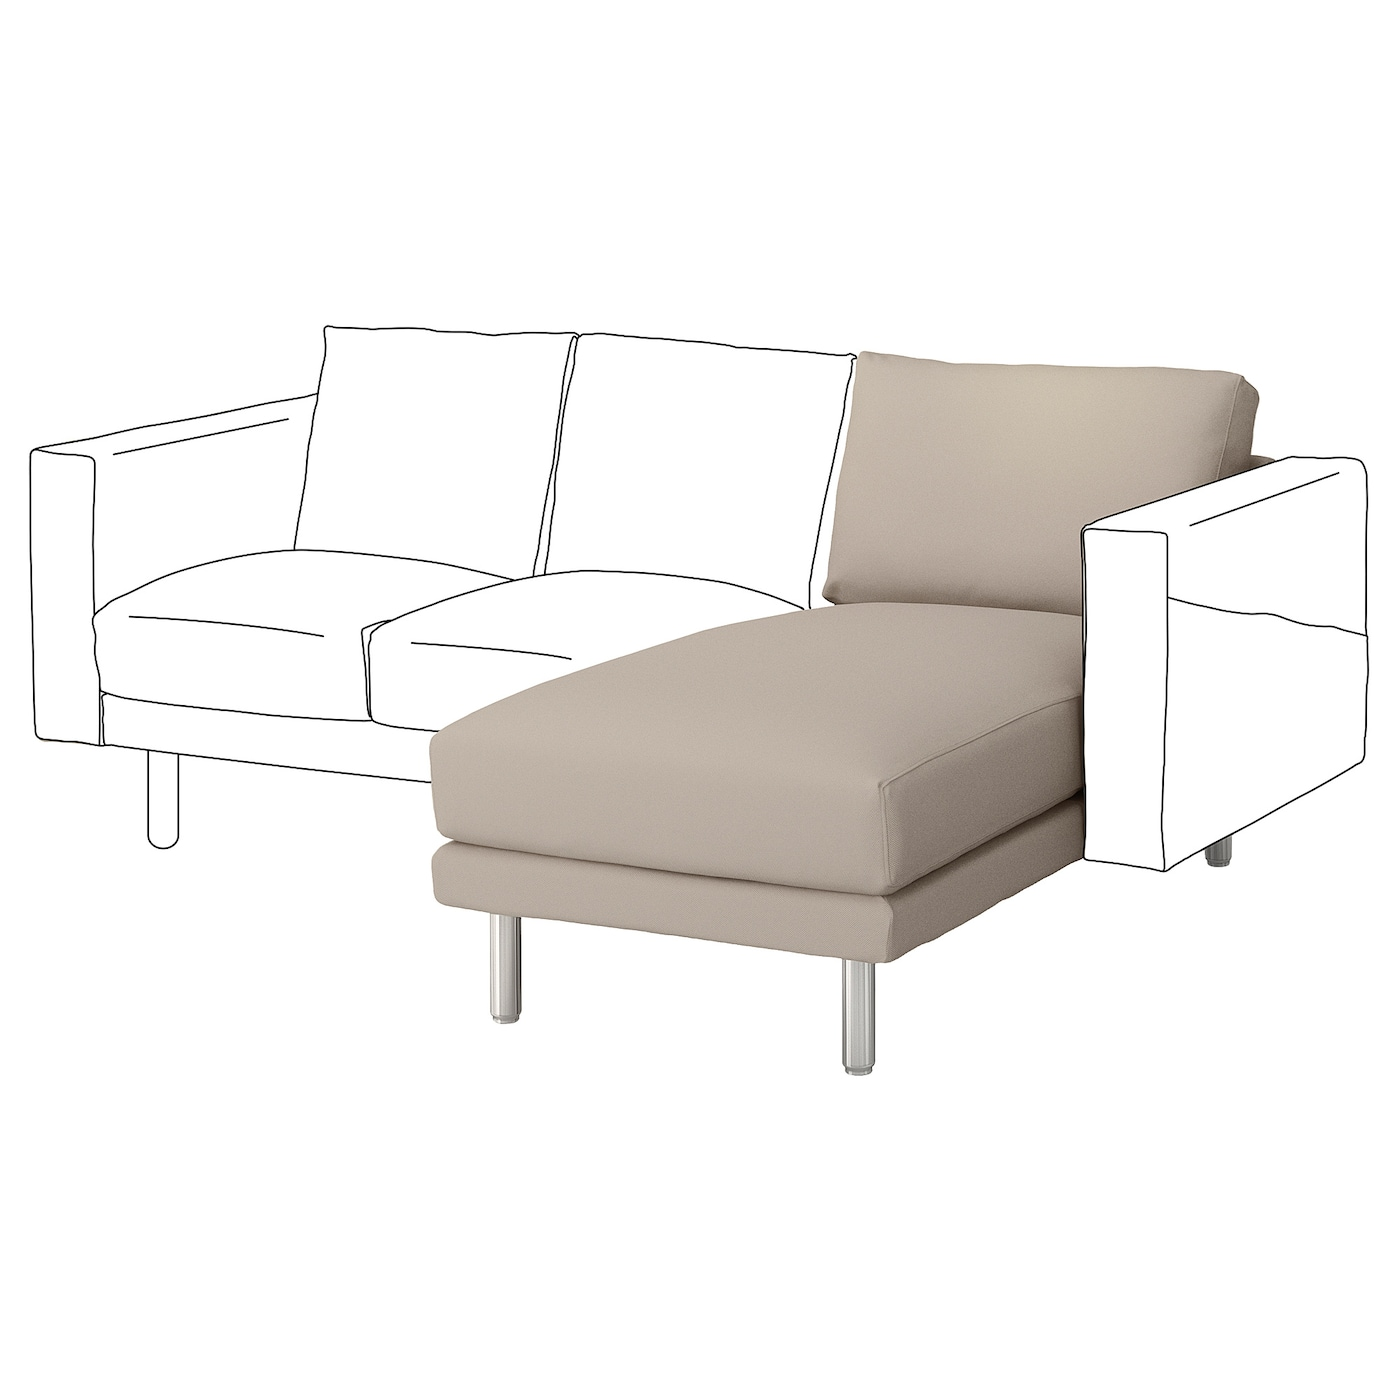 Norsborg chaise longue section gr sbo beige metal ikea for Chaise longue en aluminium